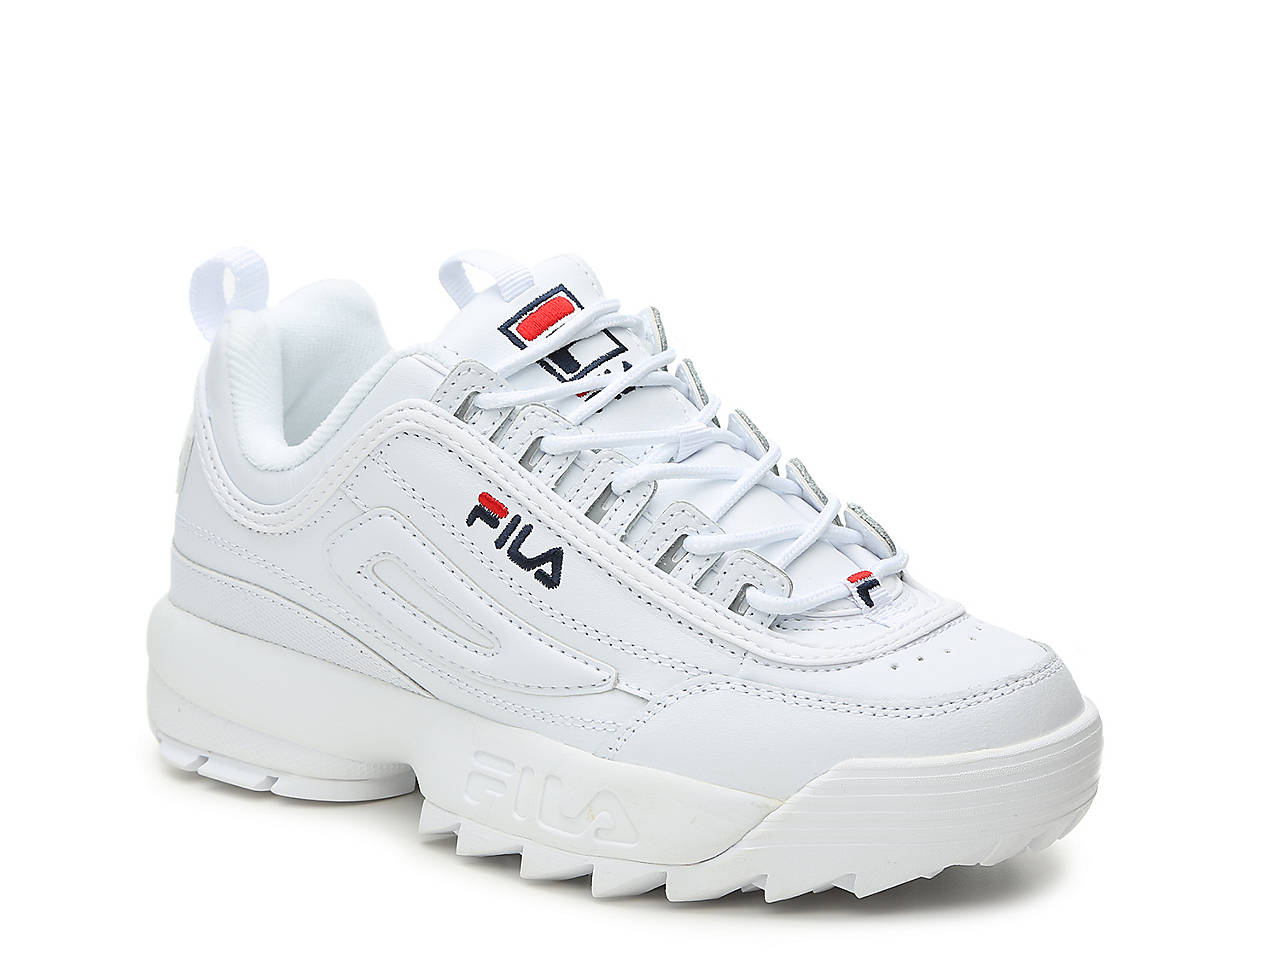 f90b3c204c4 Fila Disruptor II Premium Sneaker - Women s Men s Shoes